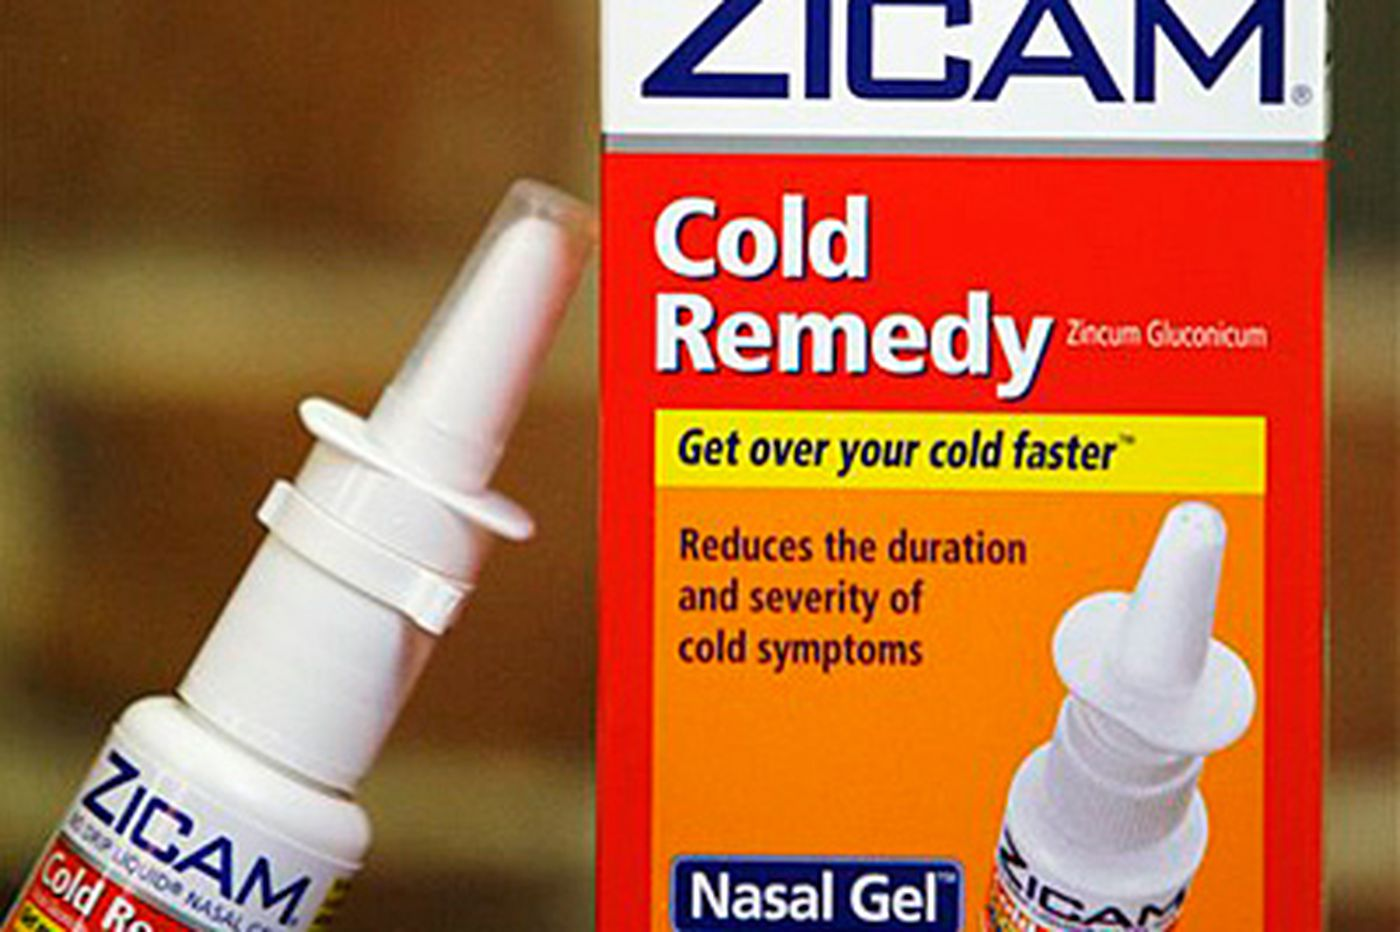 FDA says Zicam can cause loss of smell